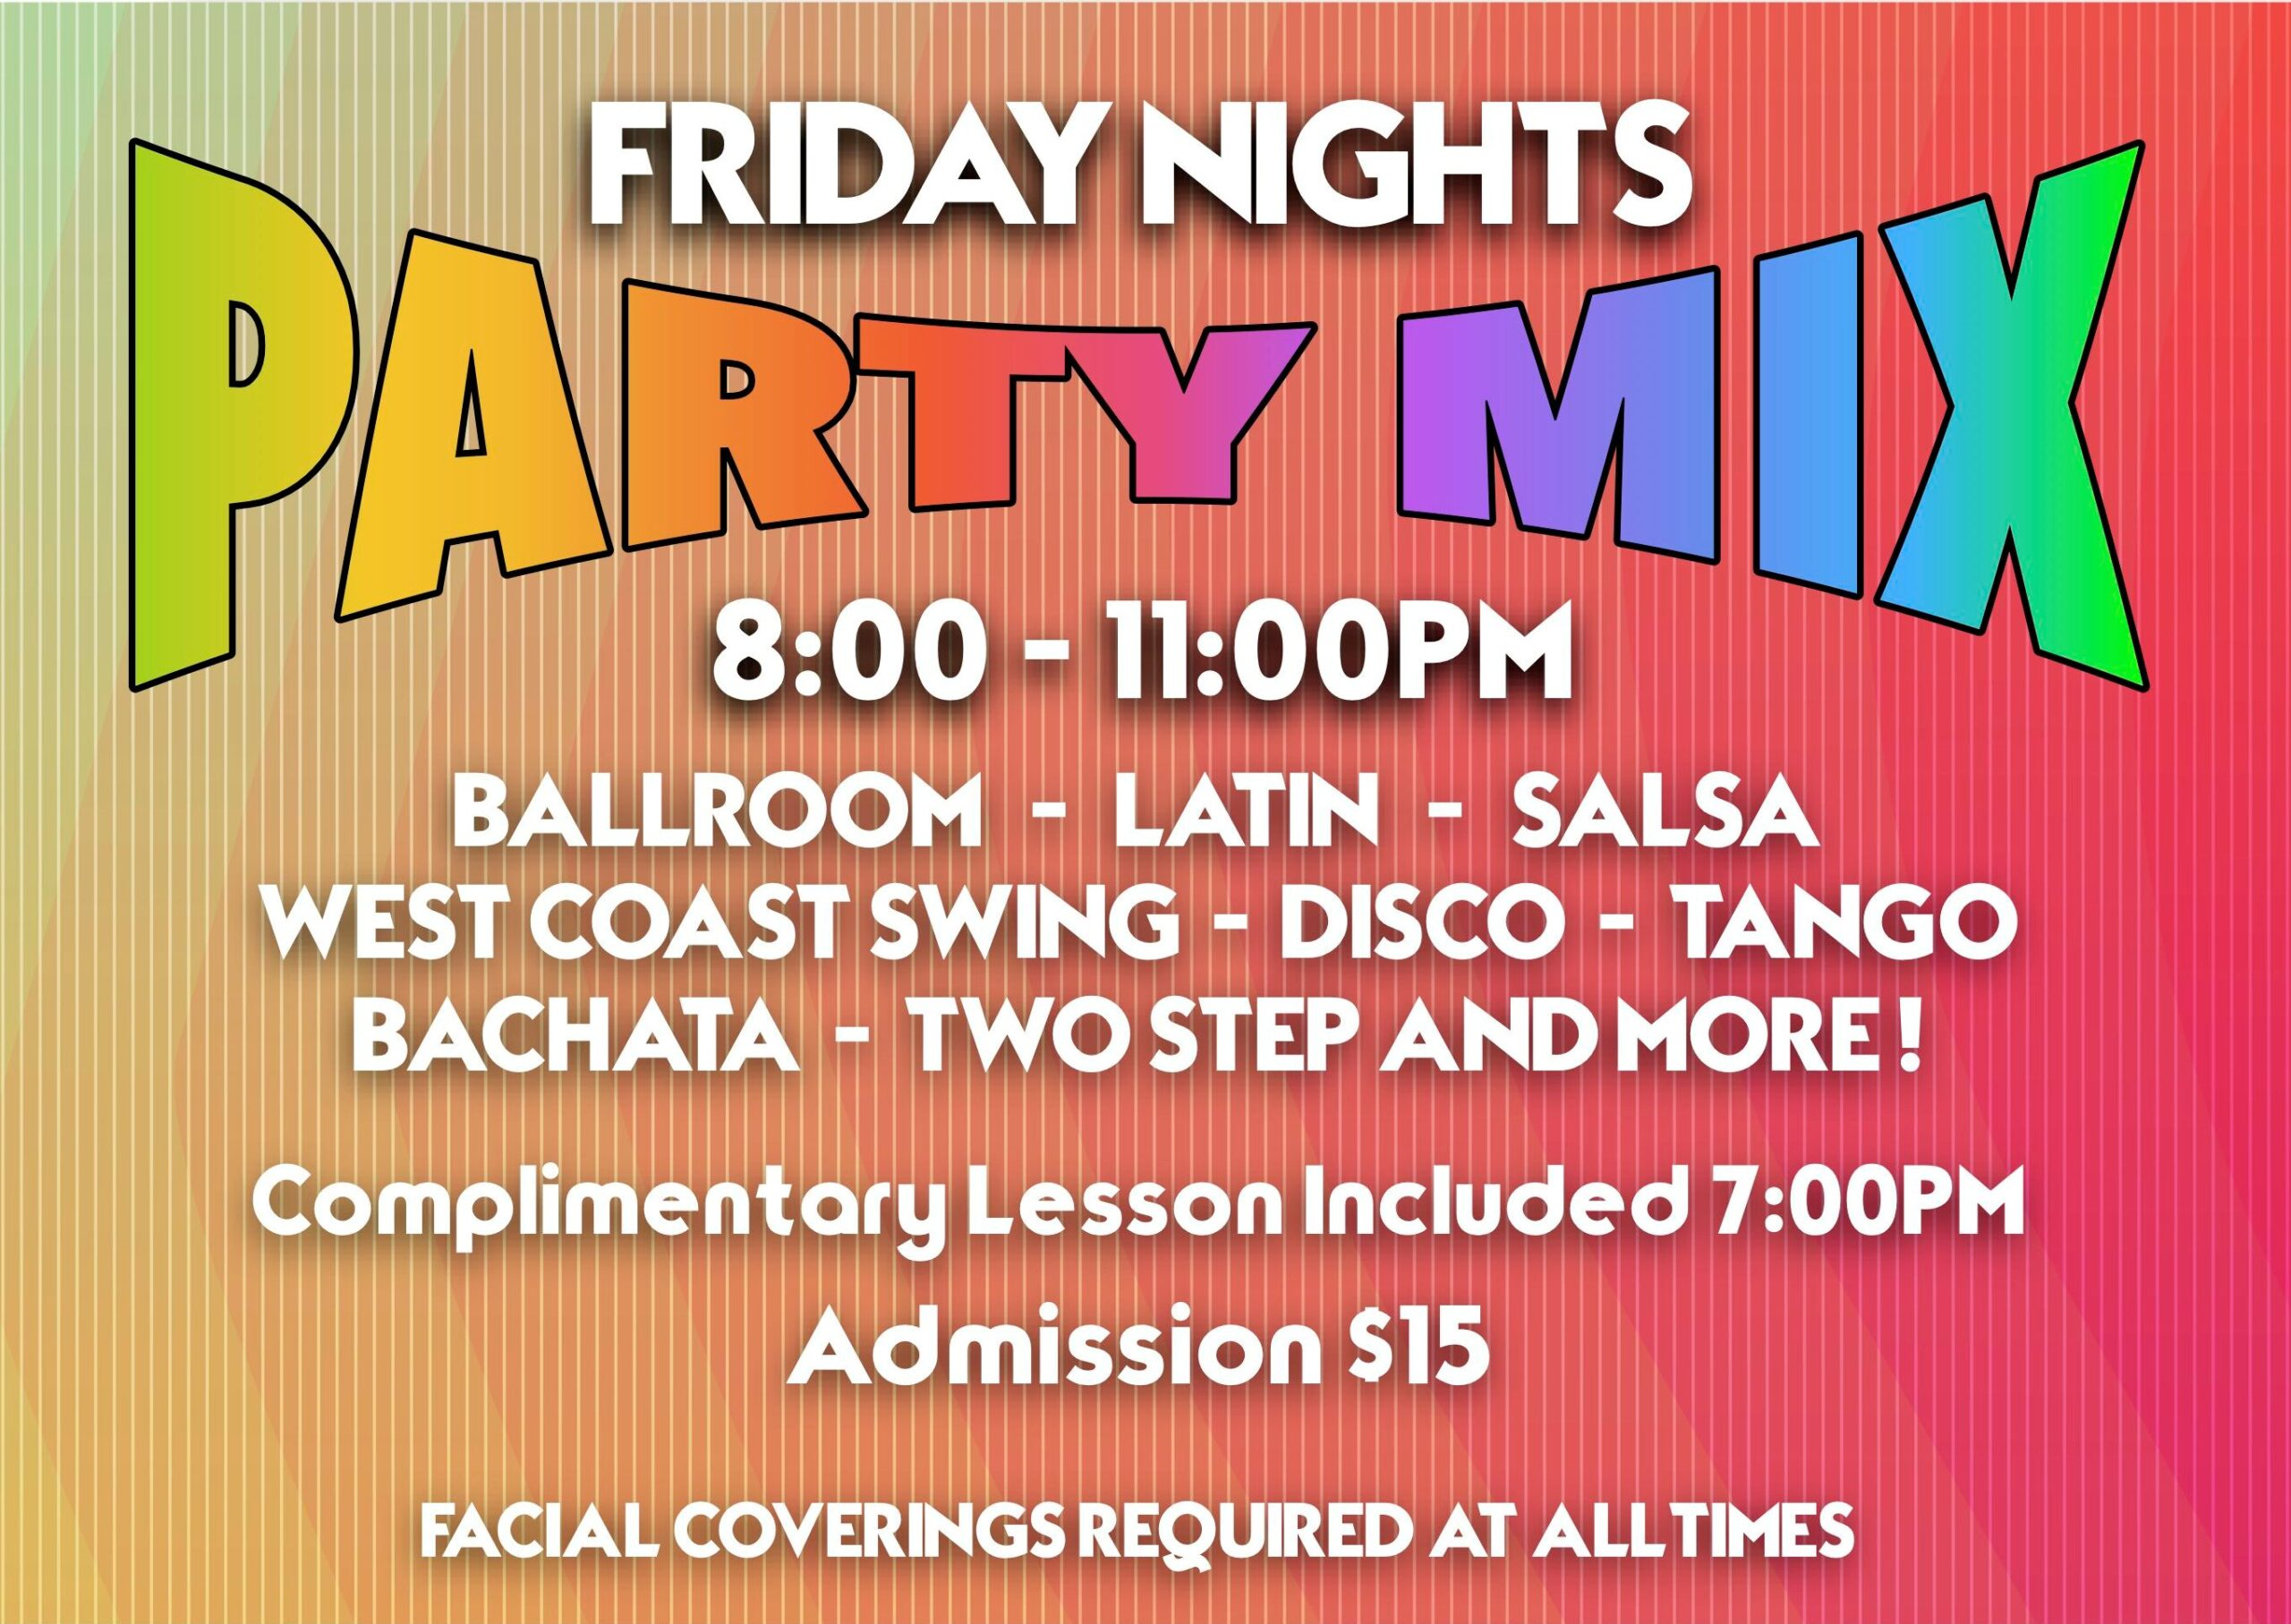 Party Mix - Every Friday Night at Goldcoast Ballroom - Starting in October, 2020